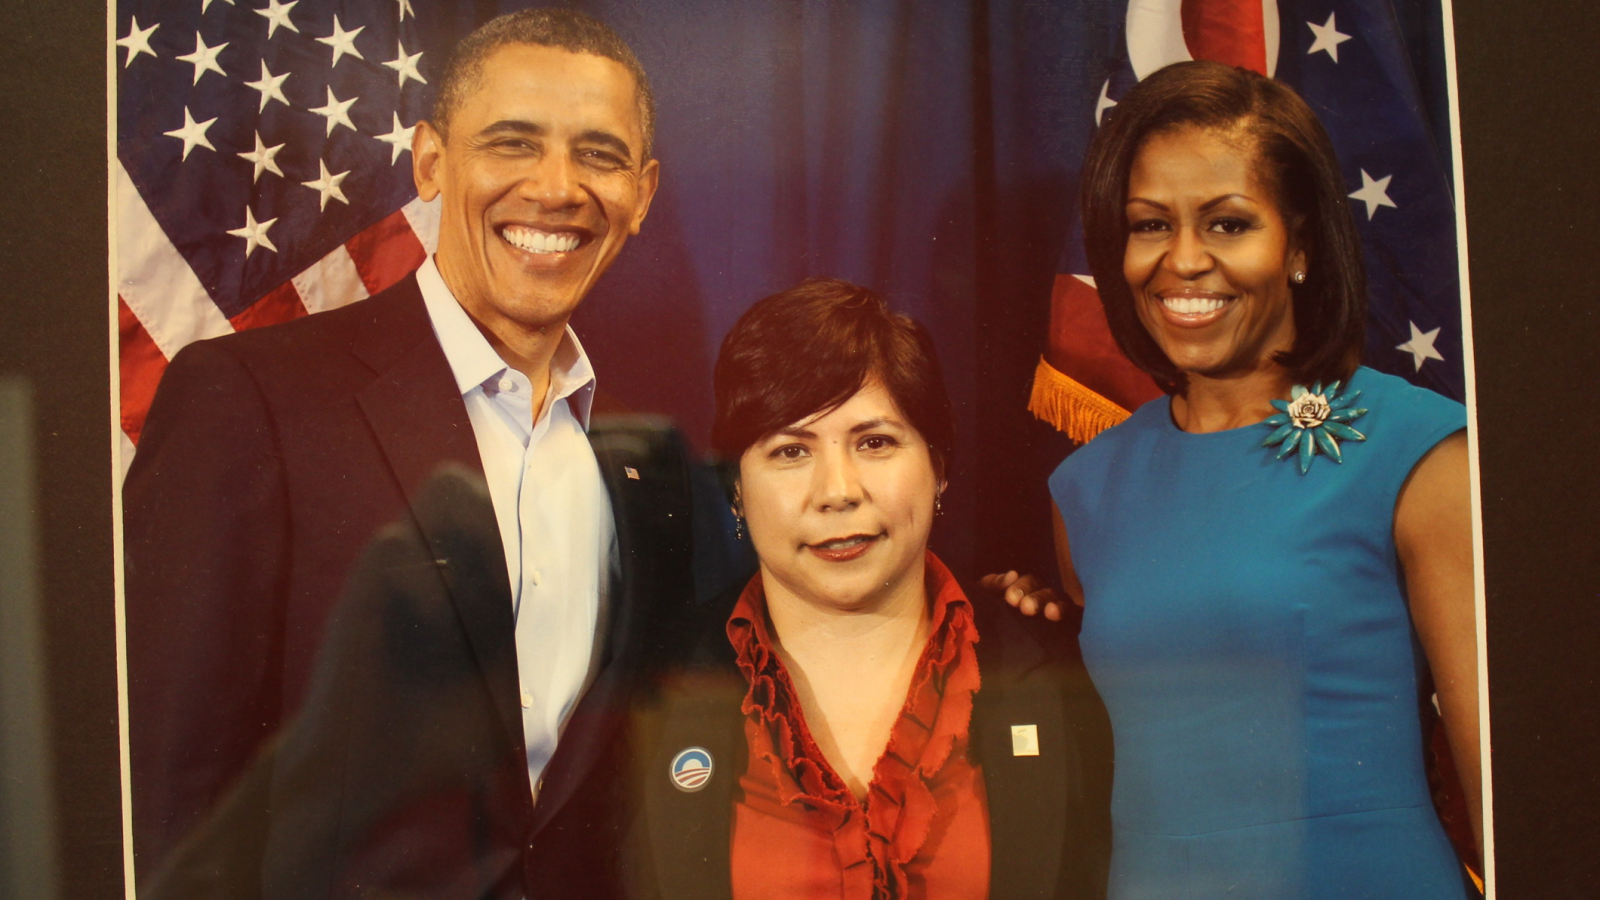 Ramona with President Obama and Michelle Obama